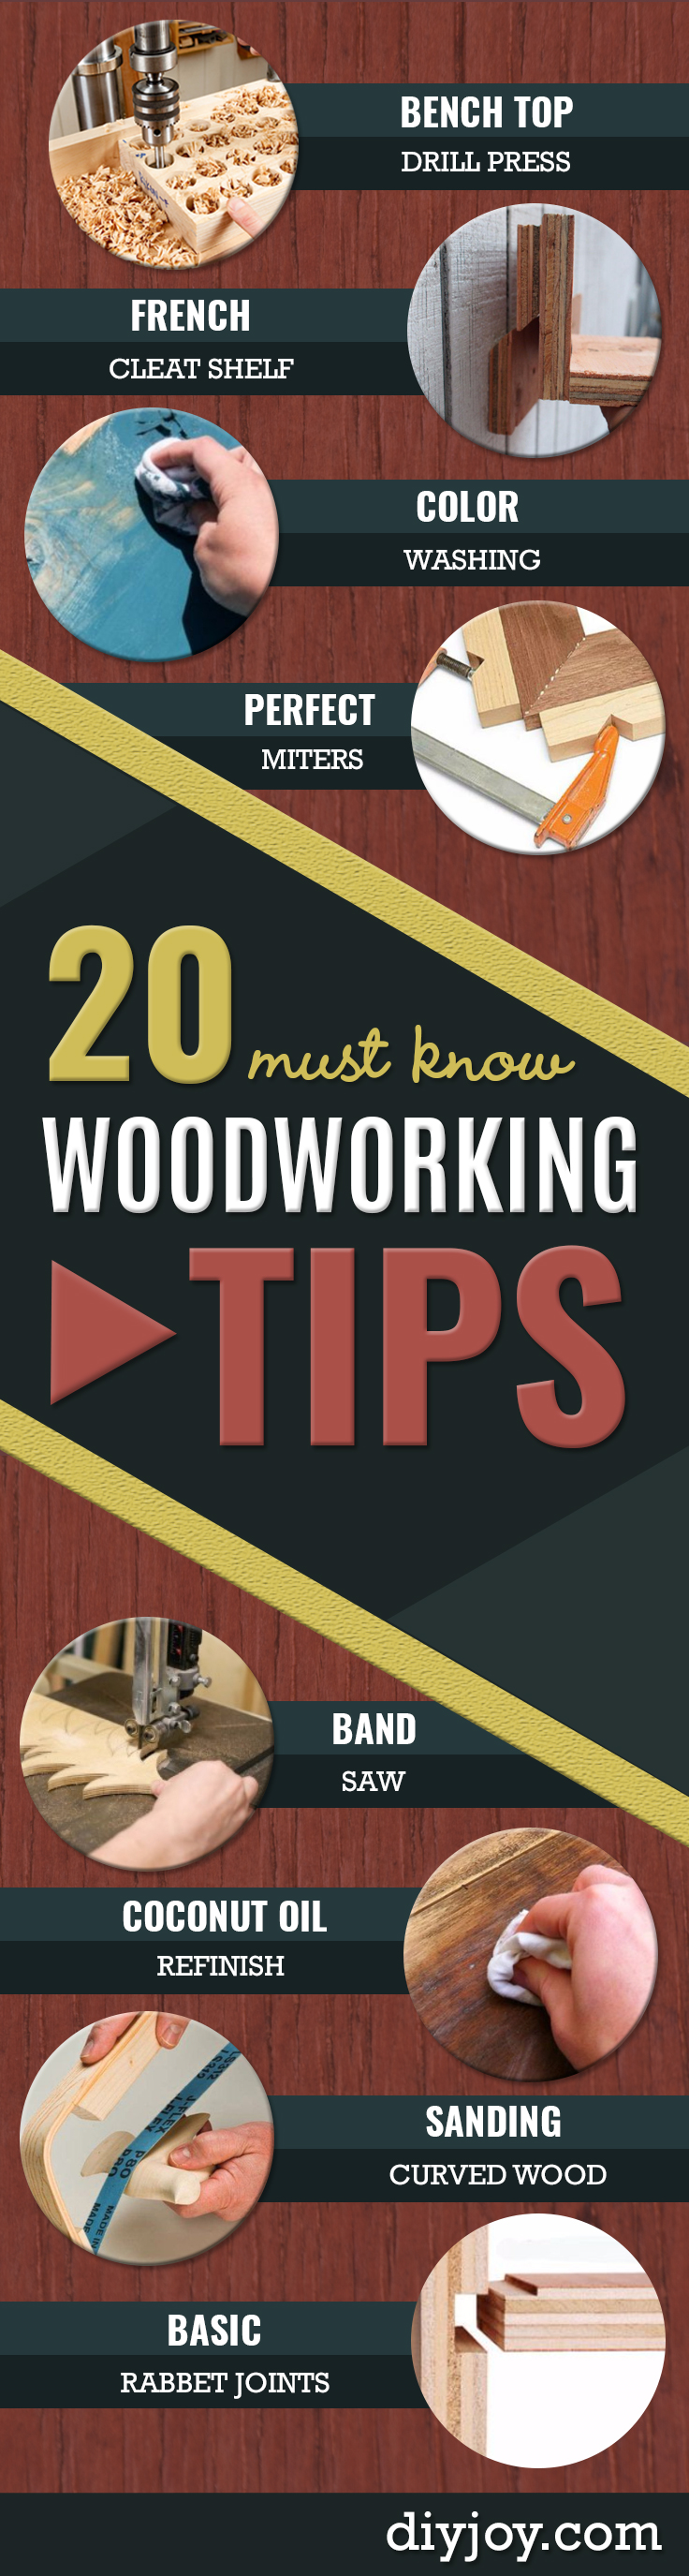 Cool Woodworking Tips- Easy Woodworking Ideas, Woodworking Tips and Tricks, Woodworking Tips For Beginners, Basic Guide For Woodworking http://diyjoy.com/diy-woodworking-tips